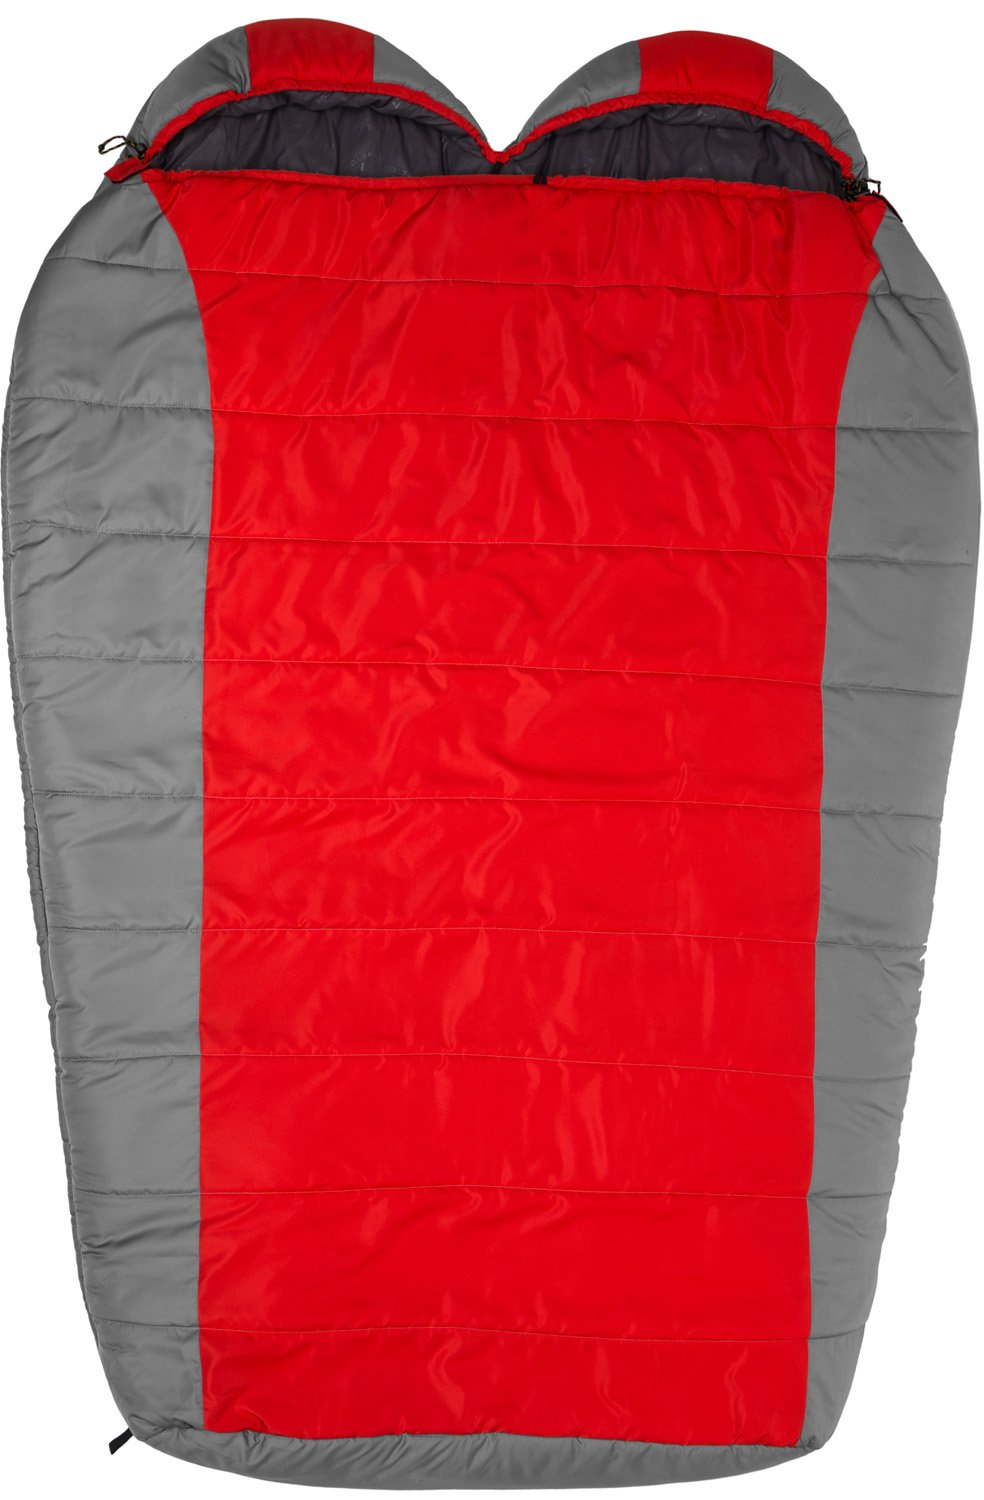 TETON Sports Tracker Ultralight Double Sleeping Bag; Lightweight Backpacking Sleeping Bag for Hiking and Camping Outdoors; Compression Sack Included; Never Roll Your Sleeping Bag Again by TETON Sports